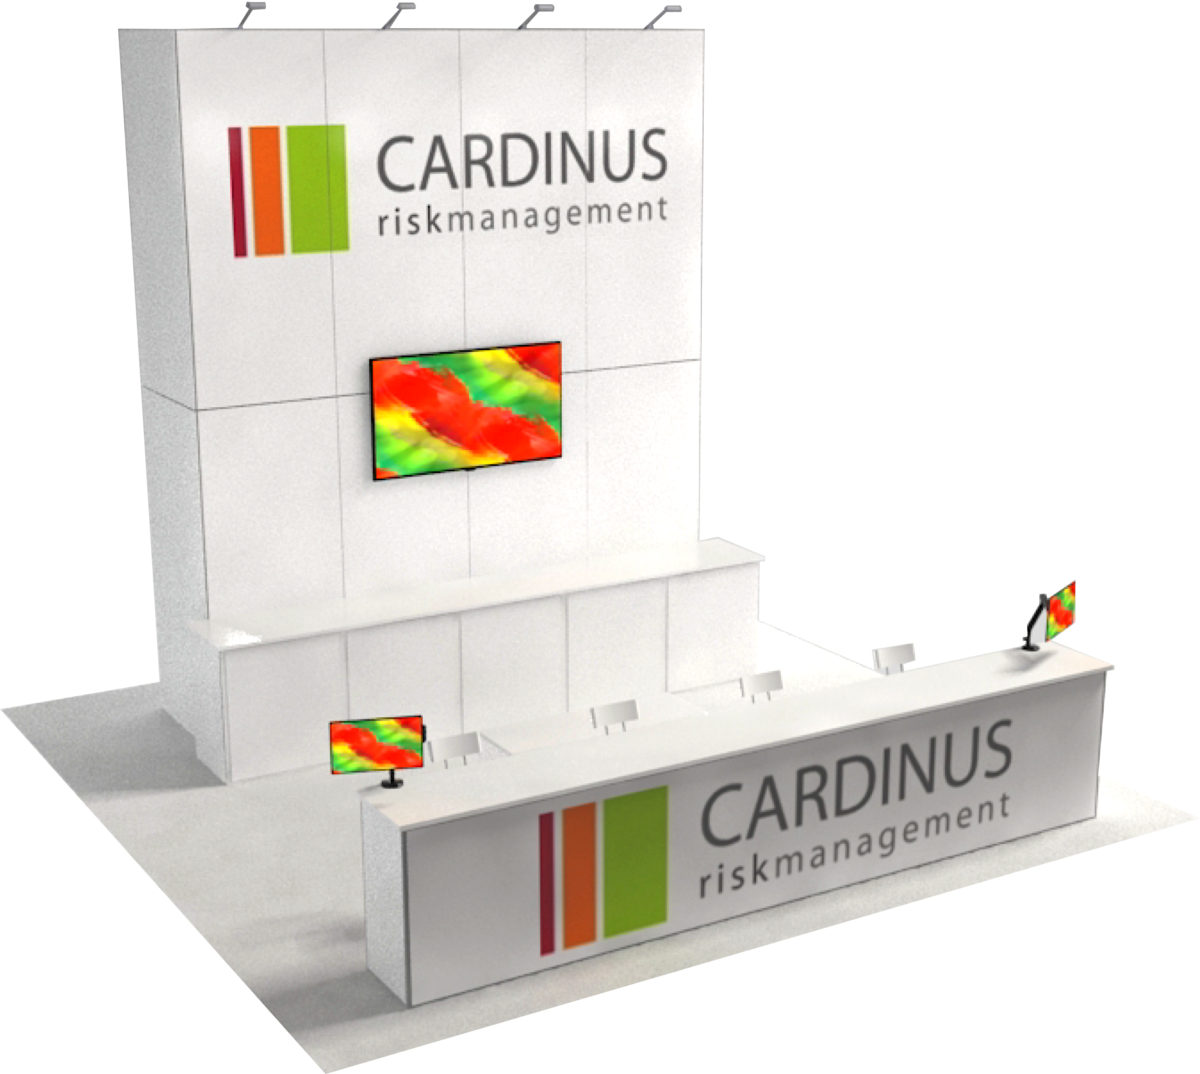 Trade Show Rental Design: Cardinus